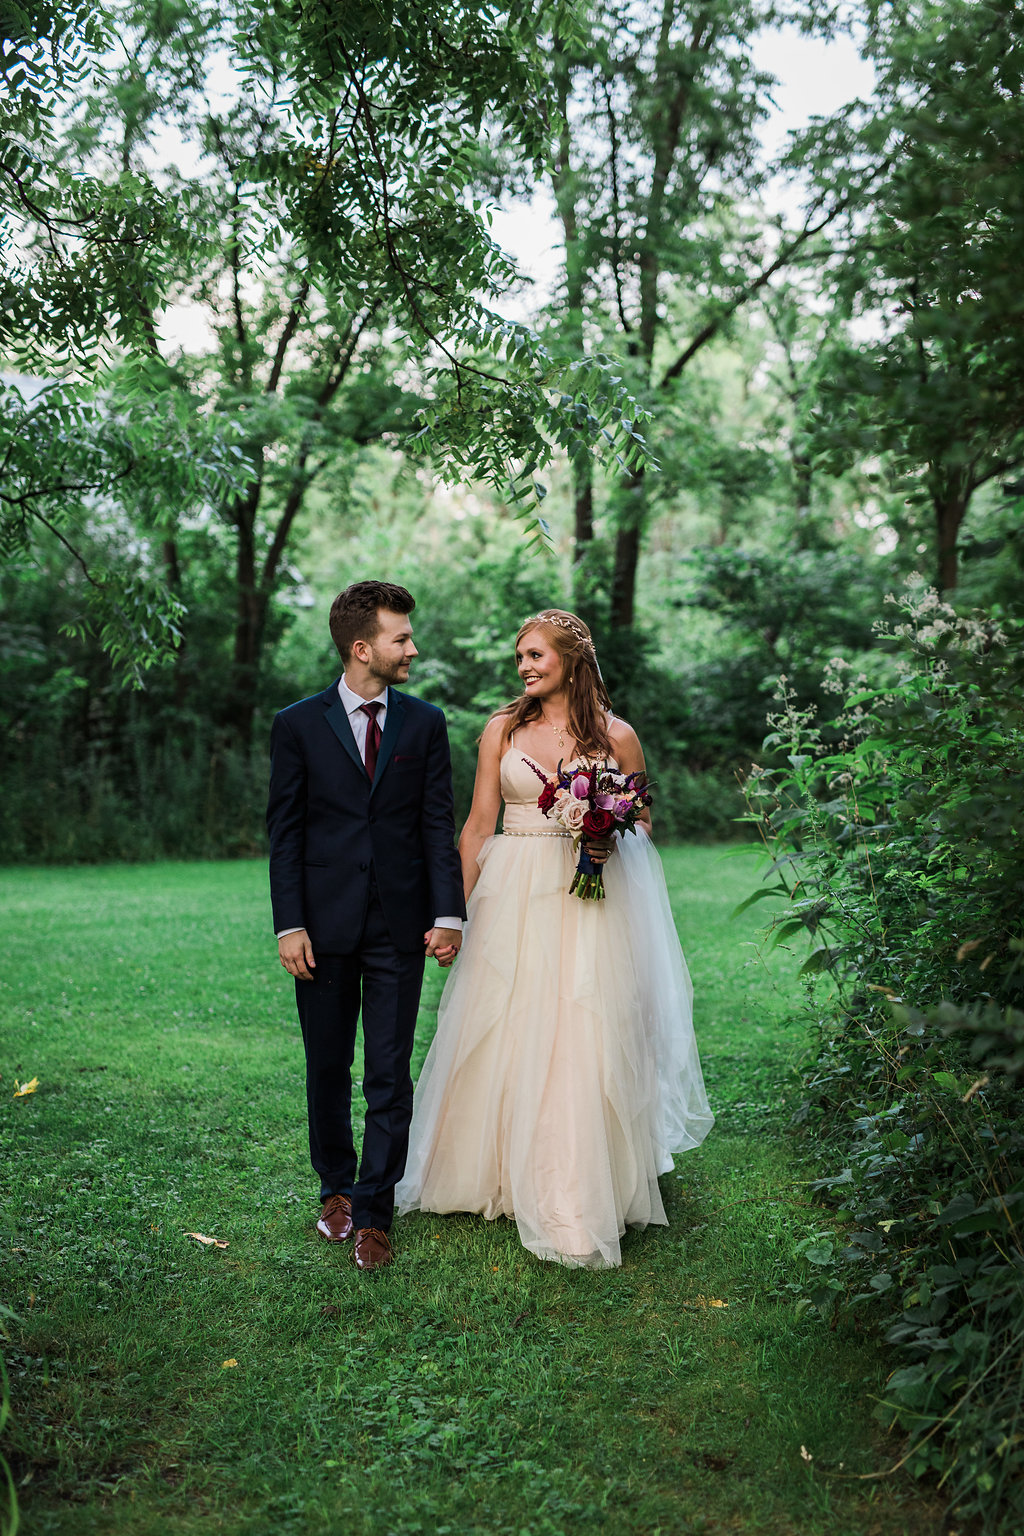 woodland wedding inspiration - photo by Katie Ricard Photography https://ruffledblog.com/dramatic-woodland-wedding-inspiration-with-burgundy-accents